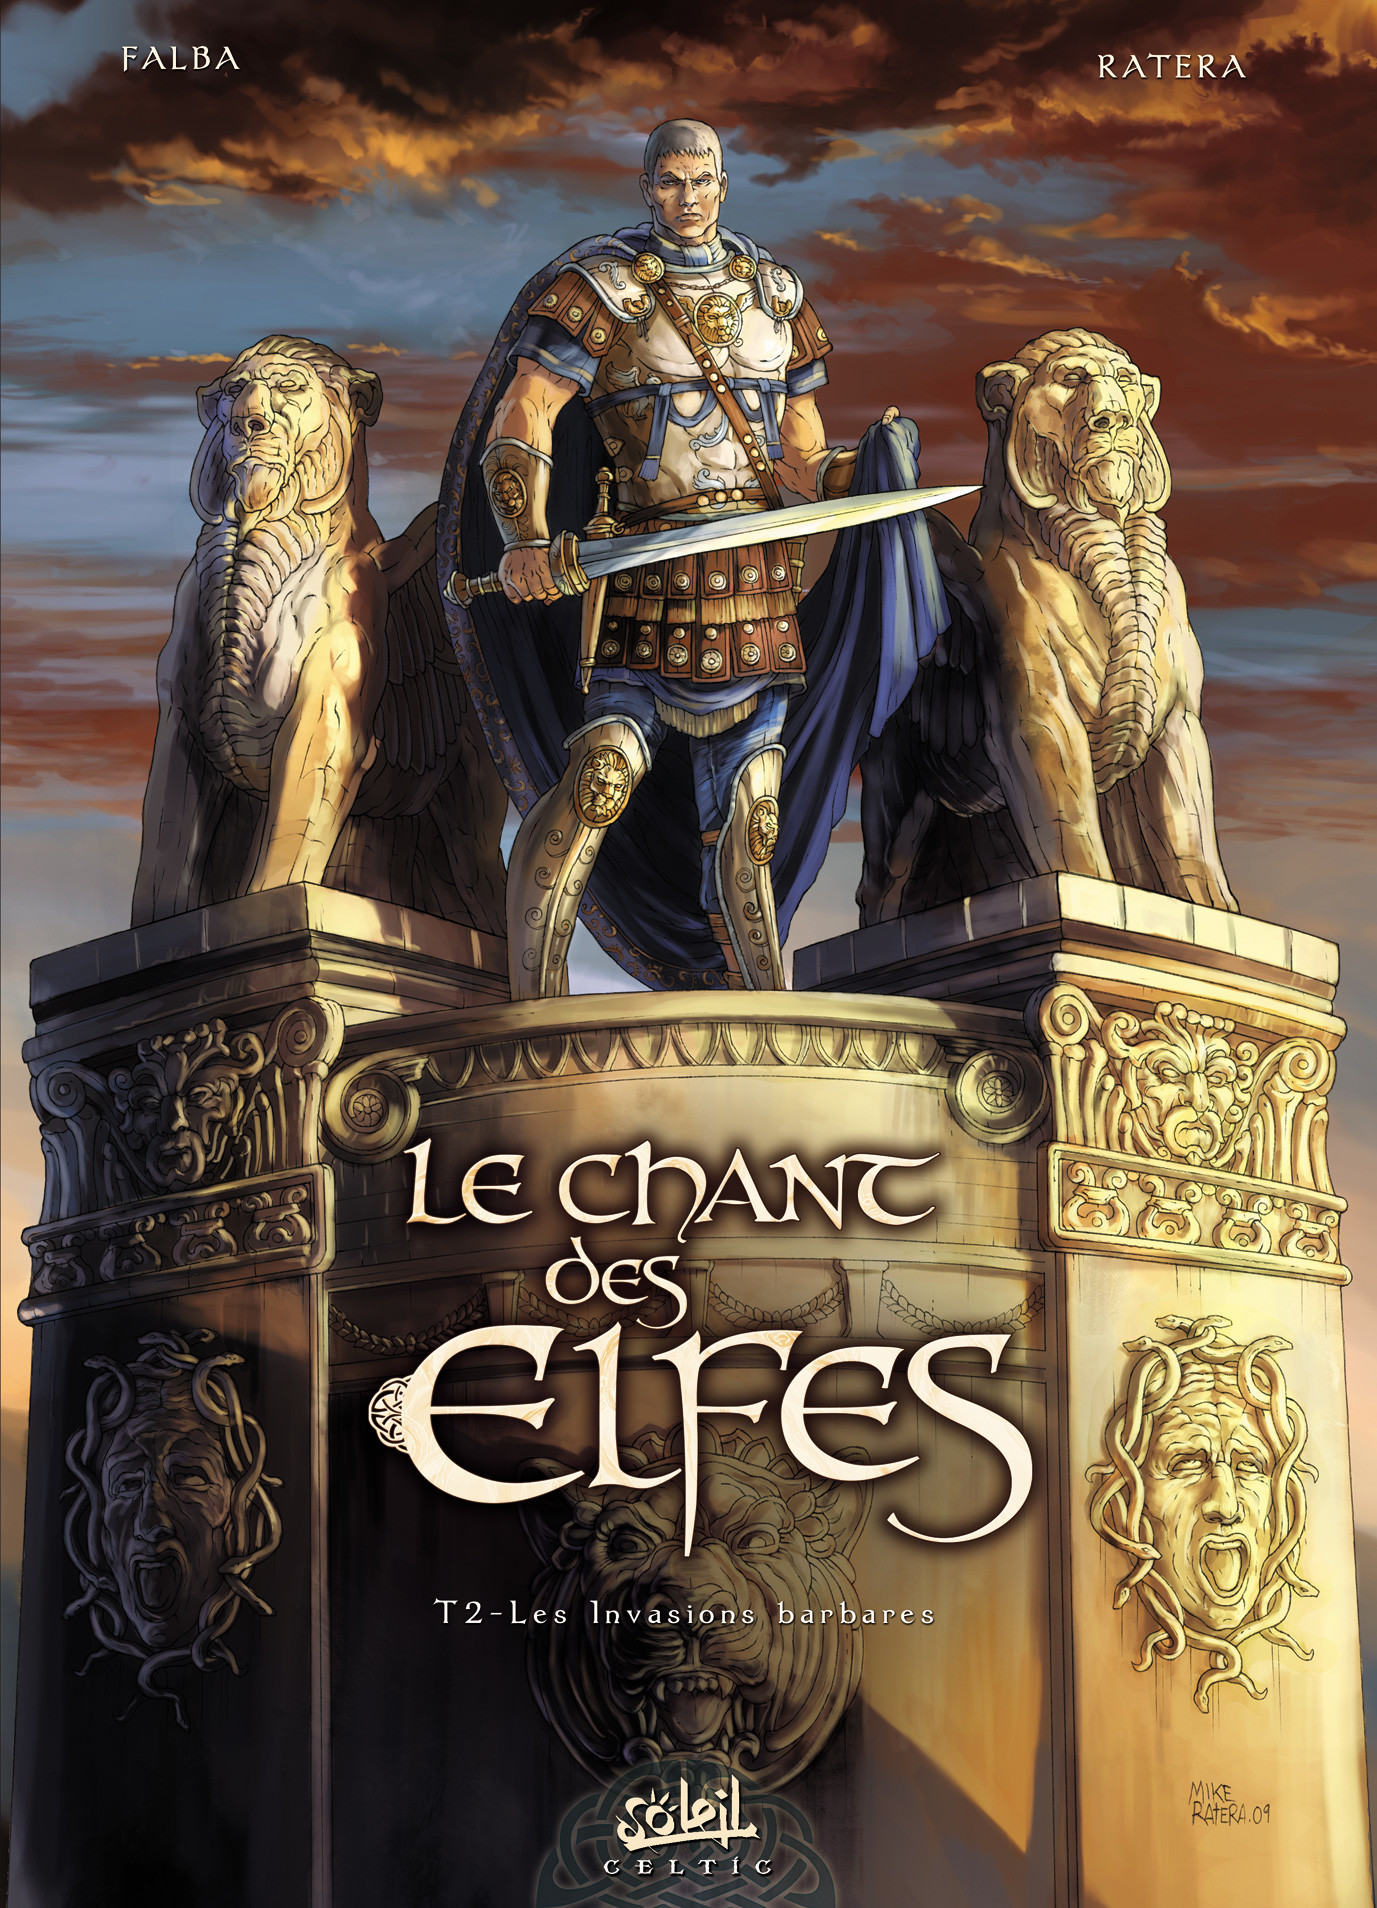 Mike ratera chant des elfes t2 cover logo